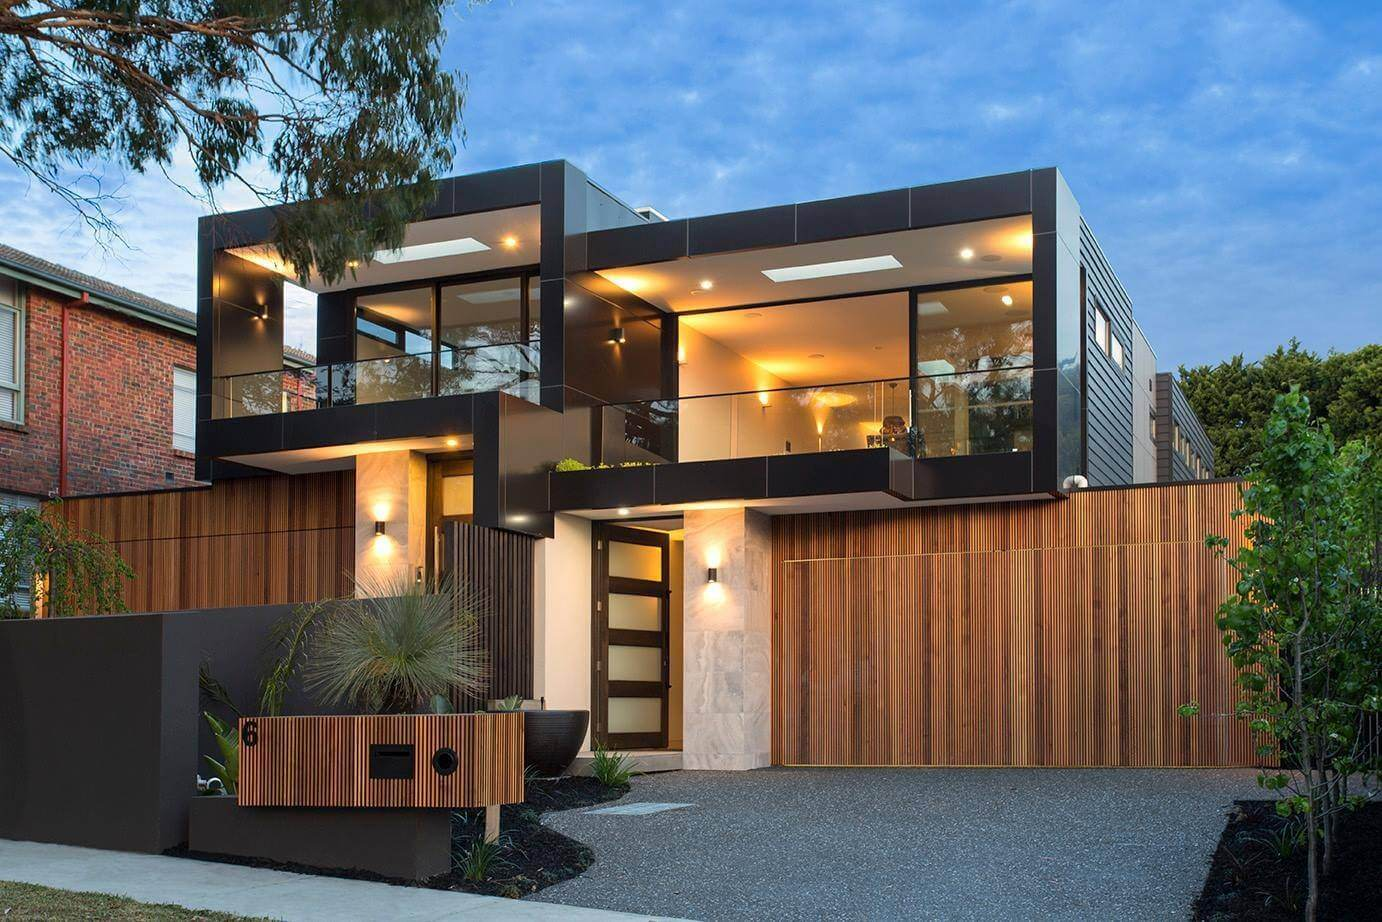 Bold Square Shapes On The Exterior And Contemporary Interior Design Define This Black Rock